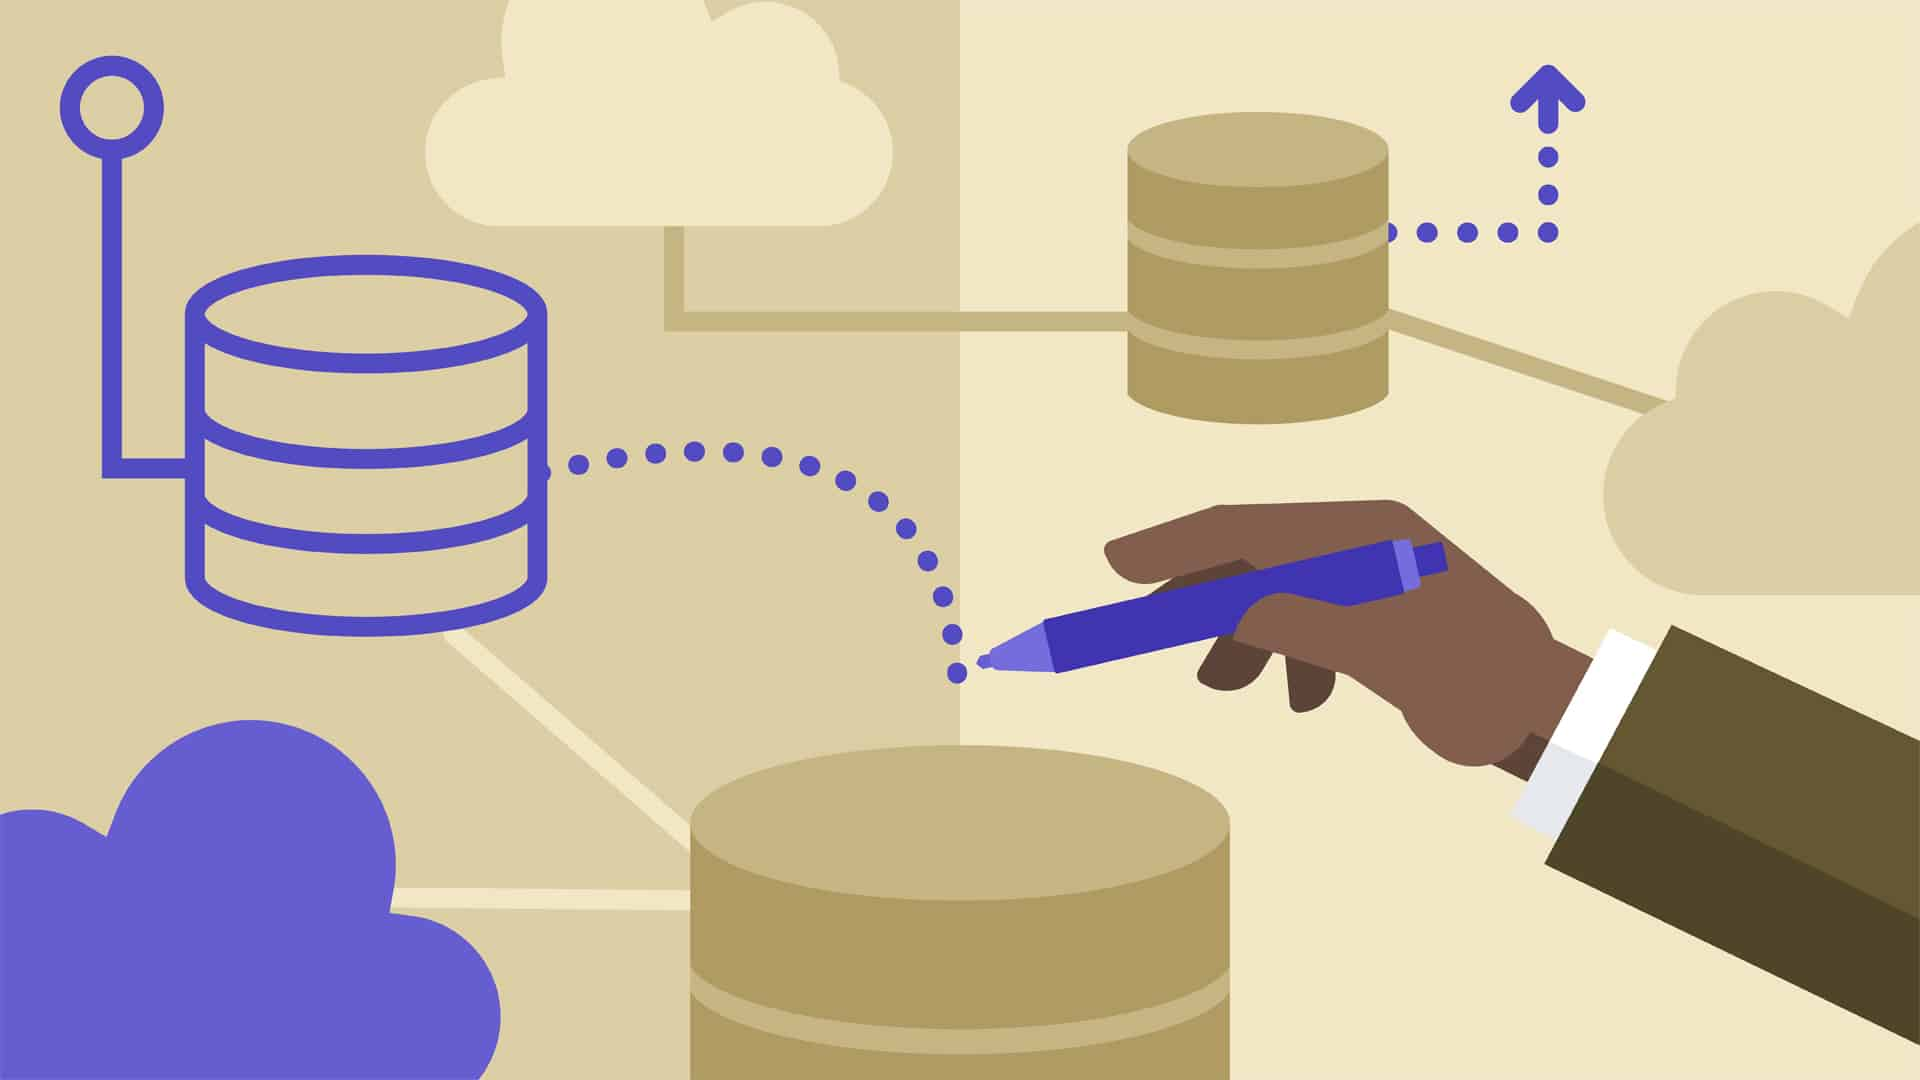 [Lynda] Microsoft Azure: Design an Application Storage and Data Access Strategy